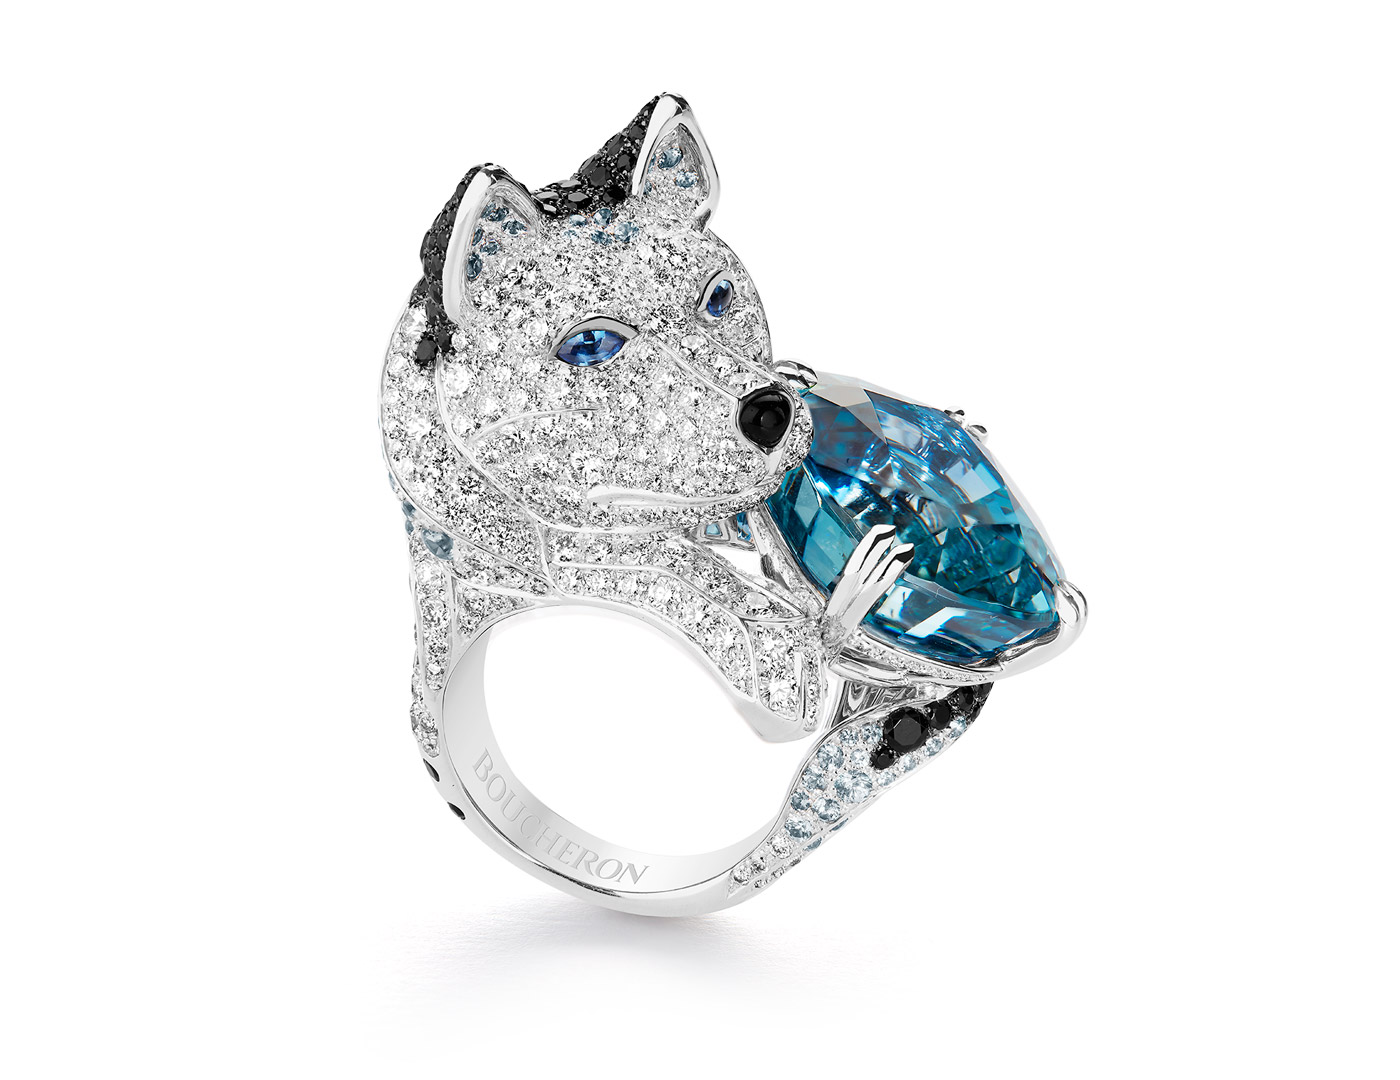 Boucheron Laika ring with aquamarine from L'Hiver Imperiale collection